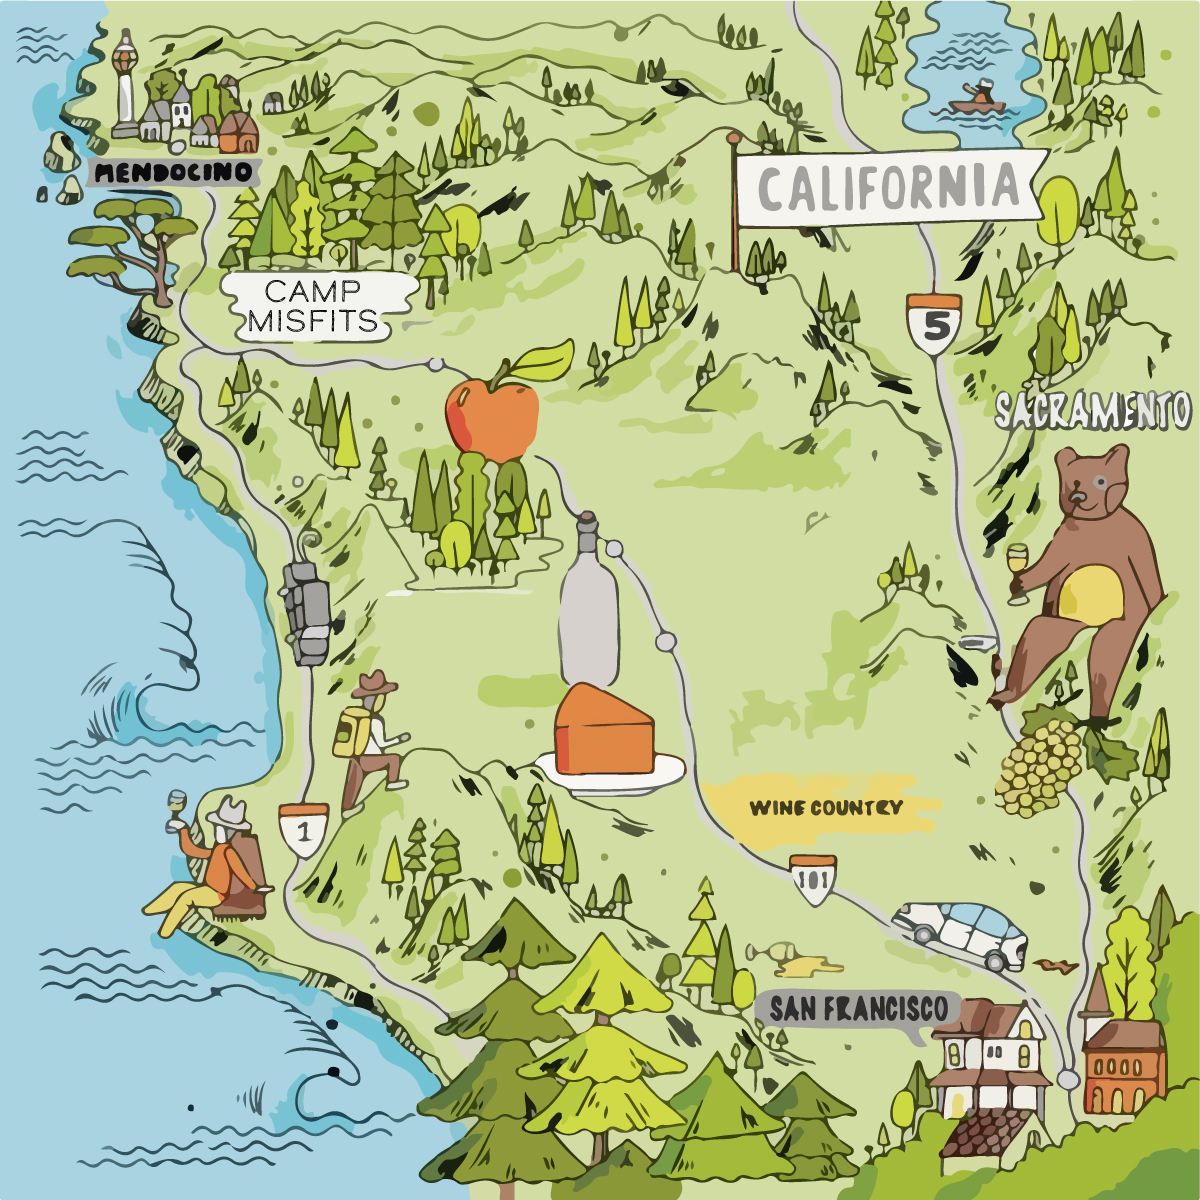 So glad to be with you on the map! - Camp Misfits is in Mendocino County in Northern California. We're taking over the beautiful property of Camp Navarro. The nearest local airport is STS in Santa Rosa (1.5 hrs) and the nearest international airports are SFO in San Francisco (2.5 hrs) and SMF in Sacramento (3 hrs). Road trip up, down, or sideways! This is Cali so don't get lost on any adventures (until you get to CAMP)!Camp Misfits901 Masonite Industrial RdNavarro, CA 95463